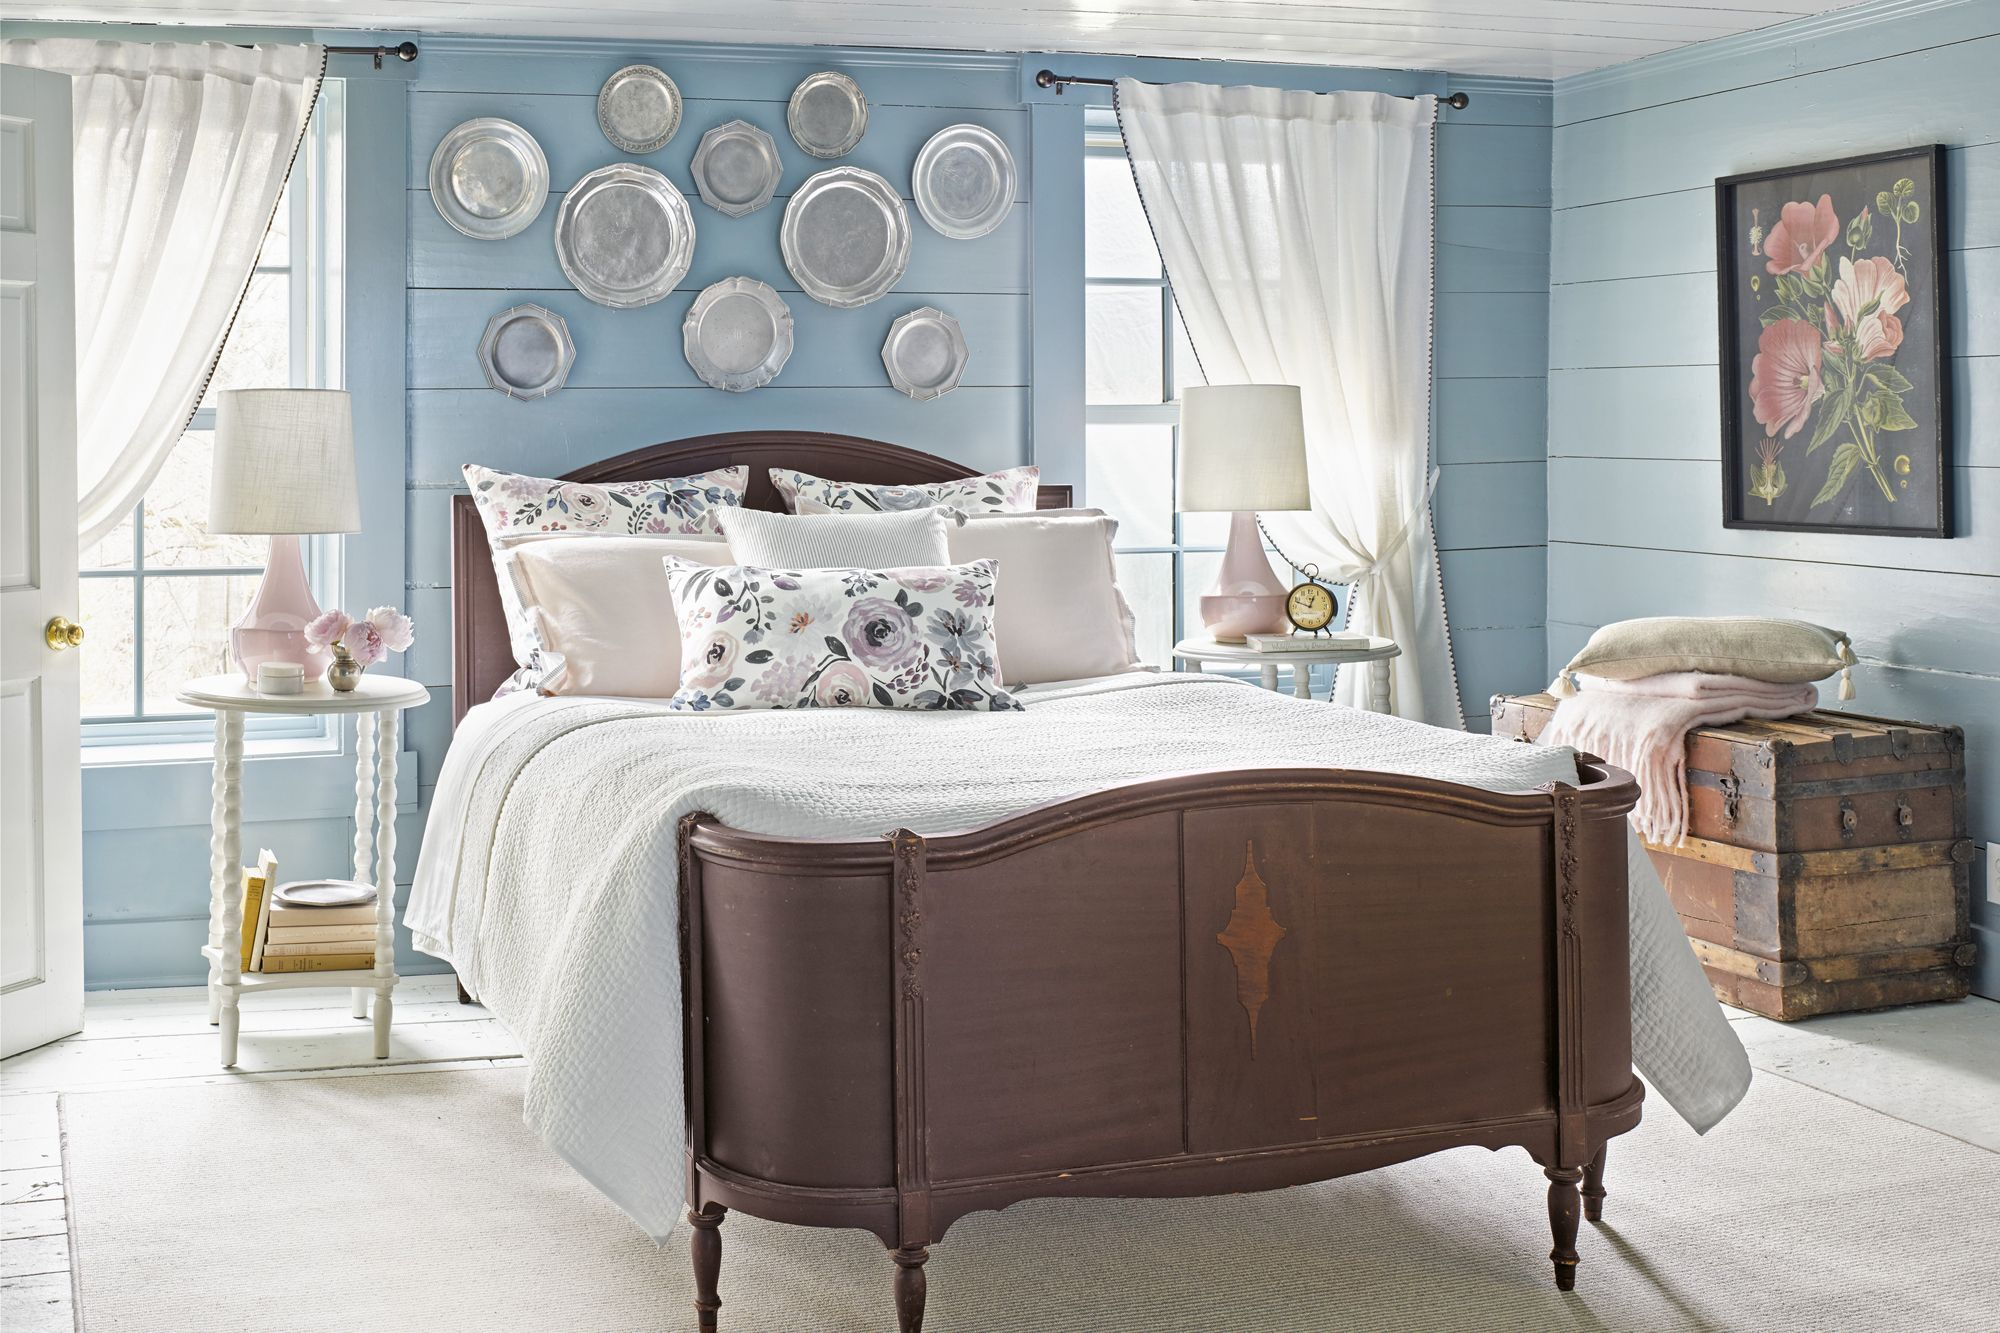 13 Creative Bedroom Wall Decor Ideas - How to Decorate Master